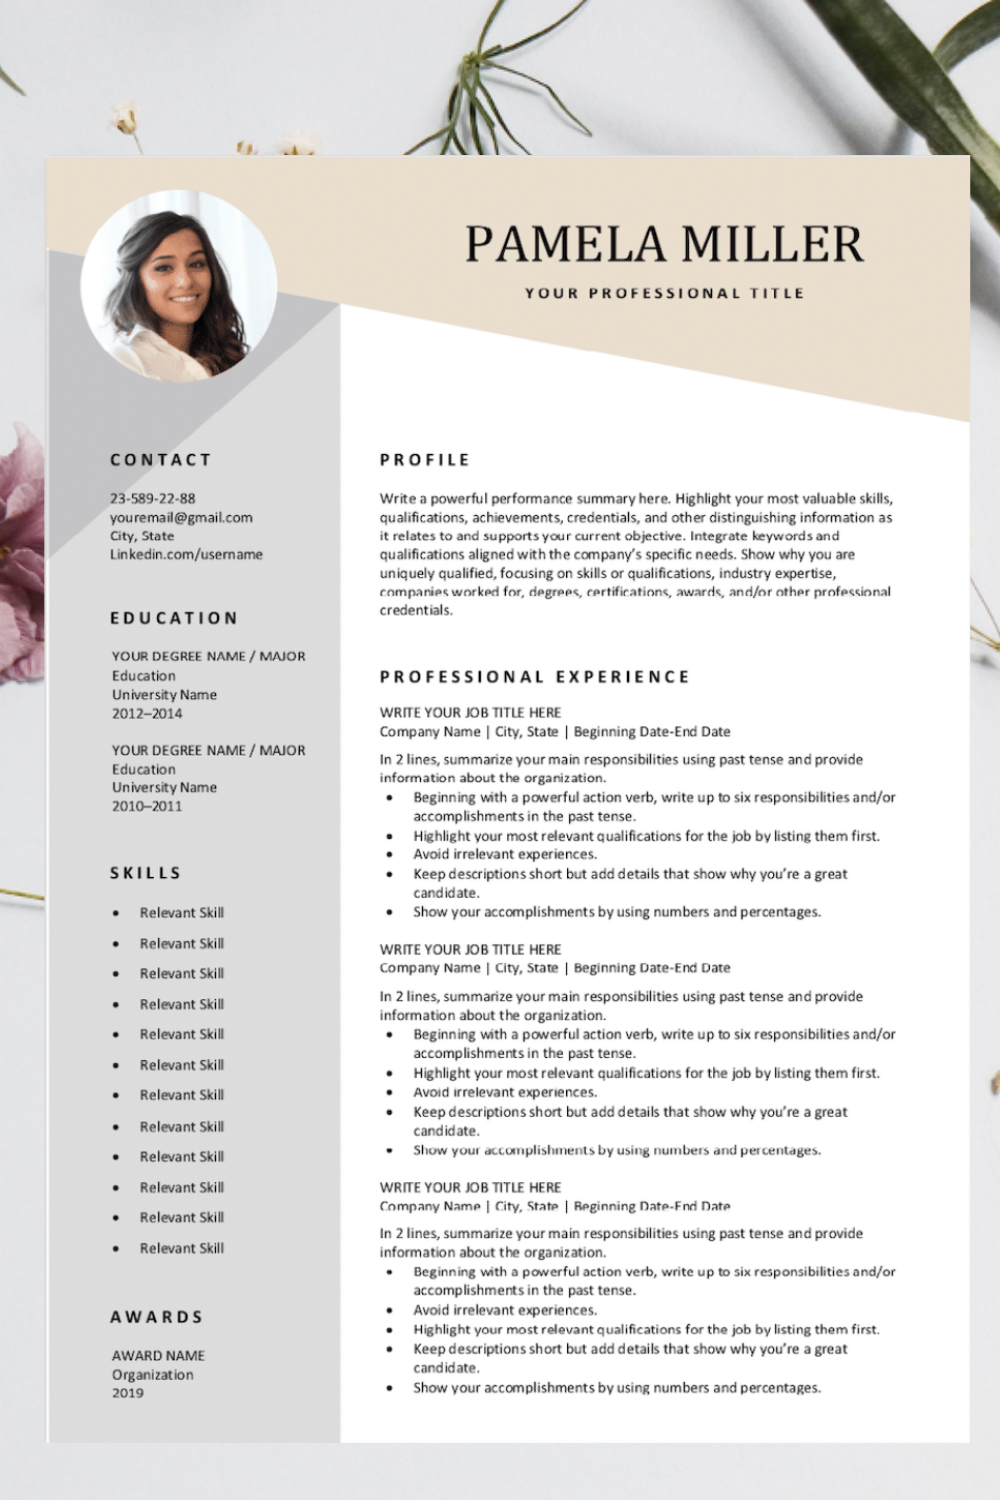 Download our completely free resume templates. Easy to